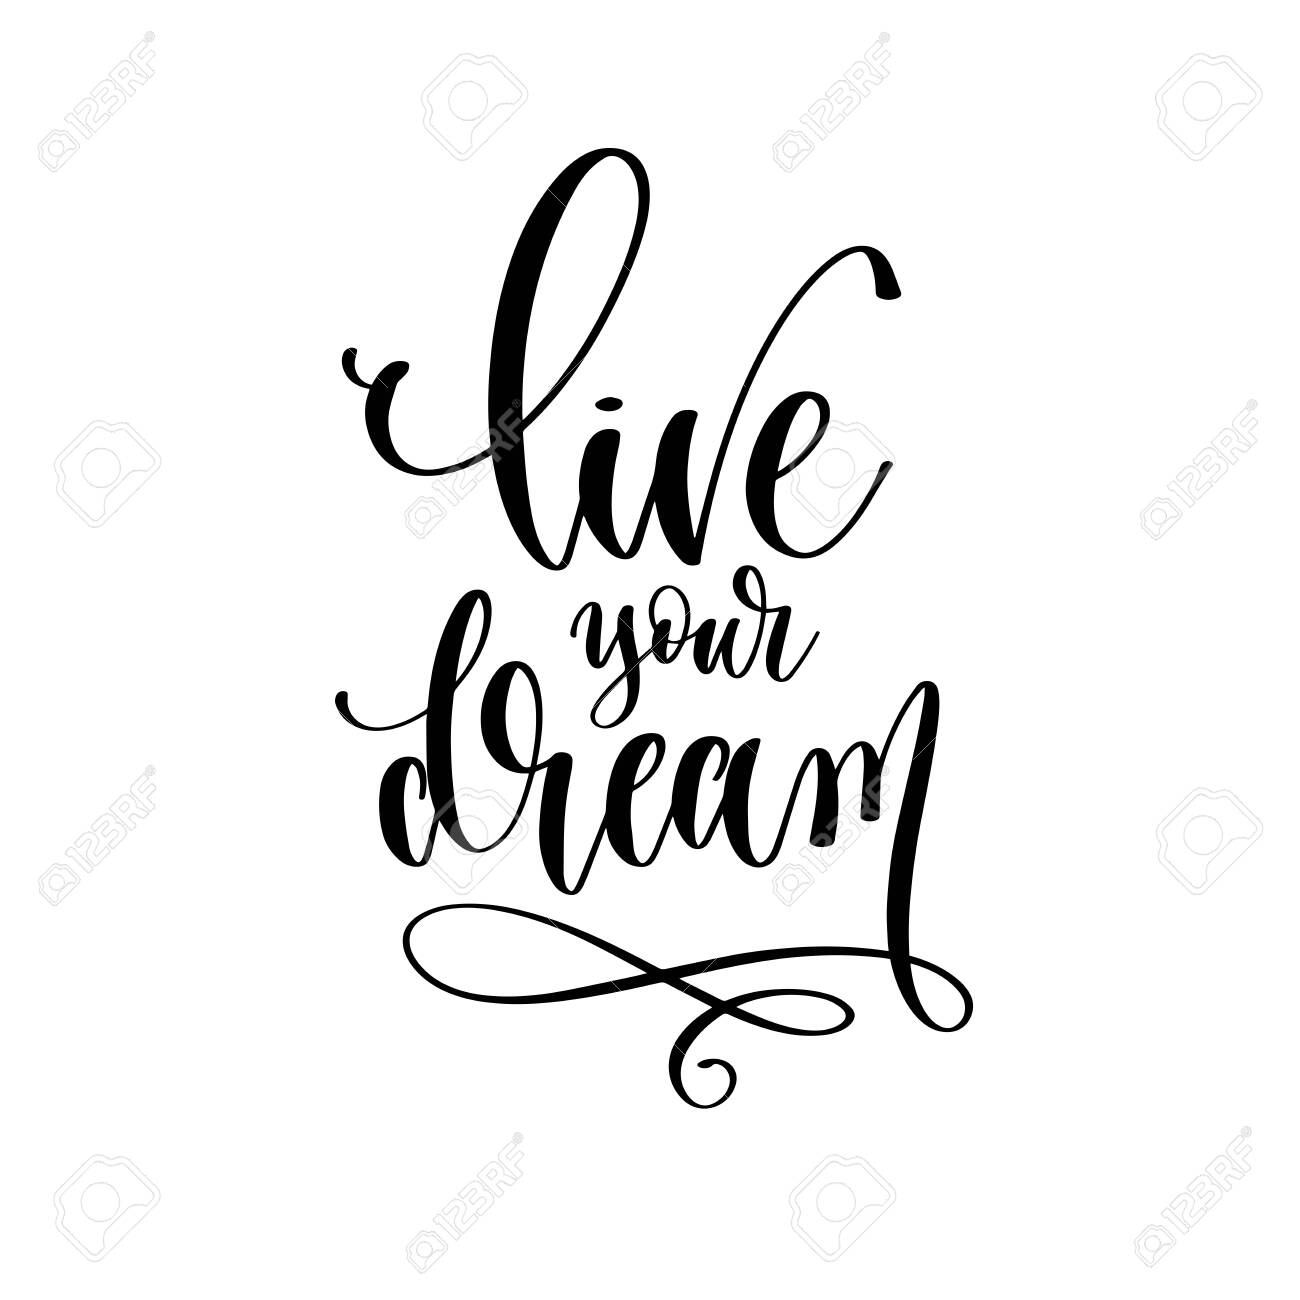 live your dream - hand lettering inscription text motivation and inspiration positive quote - 134819630